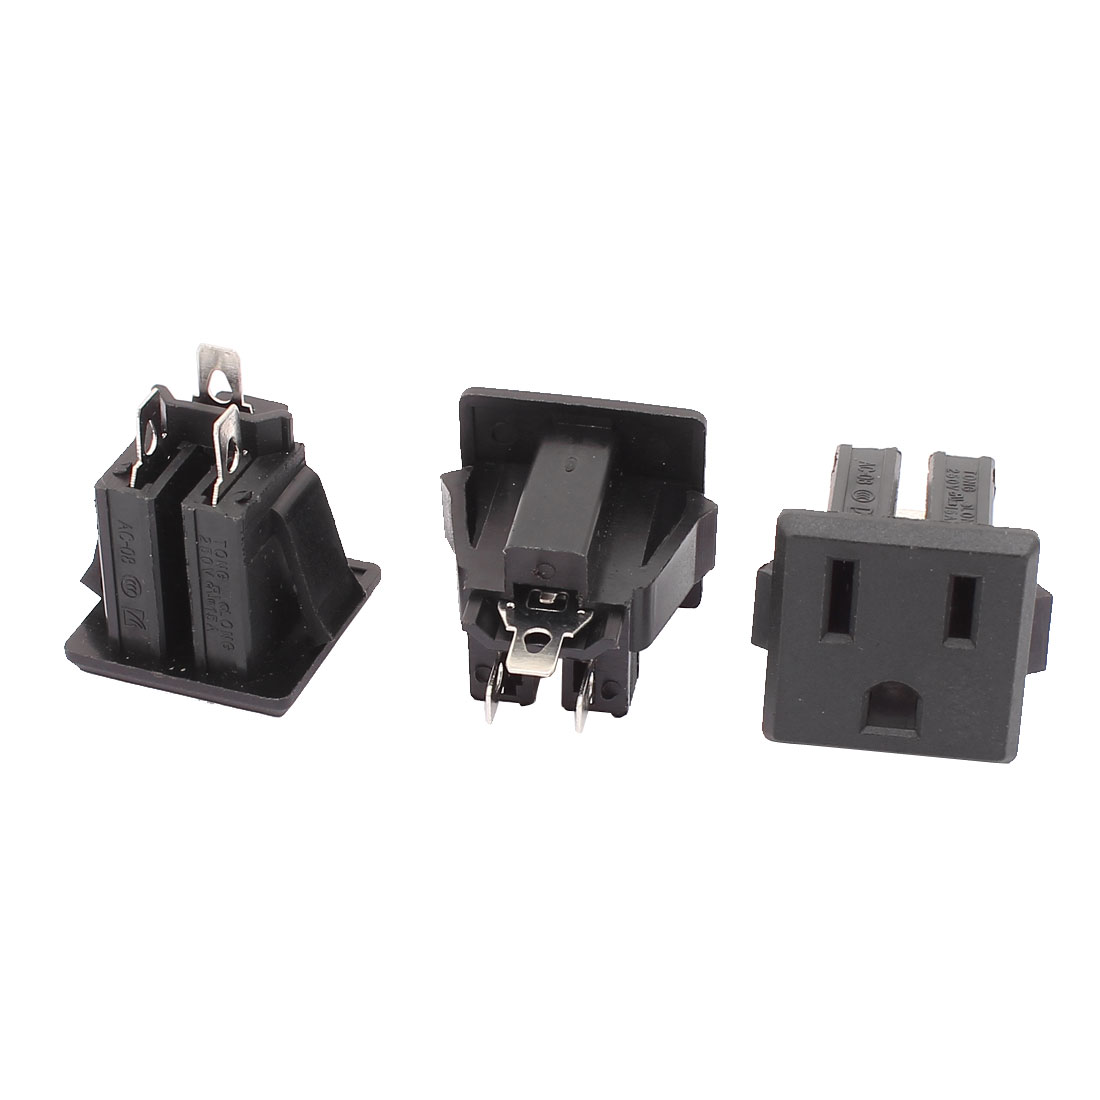 AC 15A 125V US Plug Panel Mount US Outlet Power Socket Black 3 Pcs